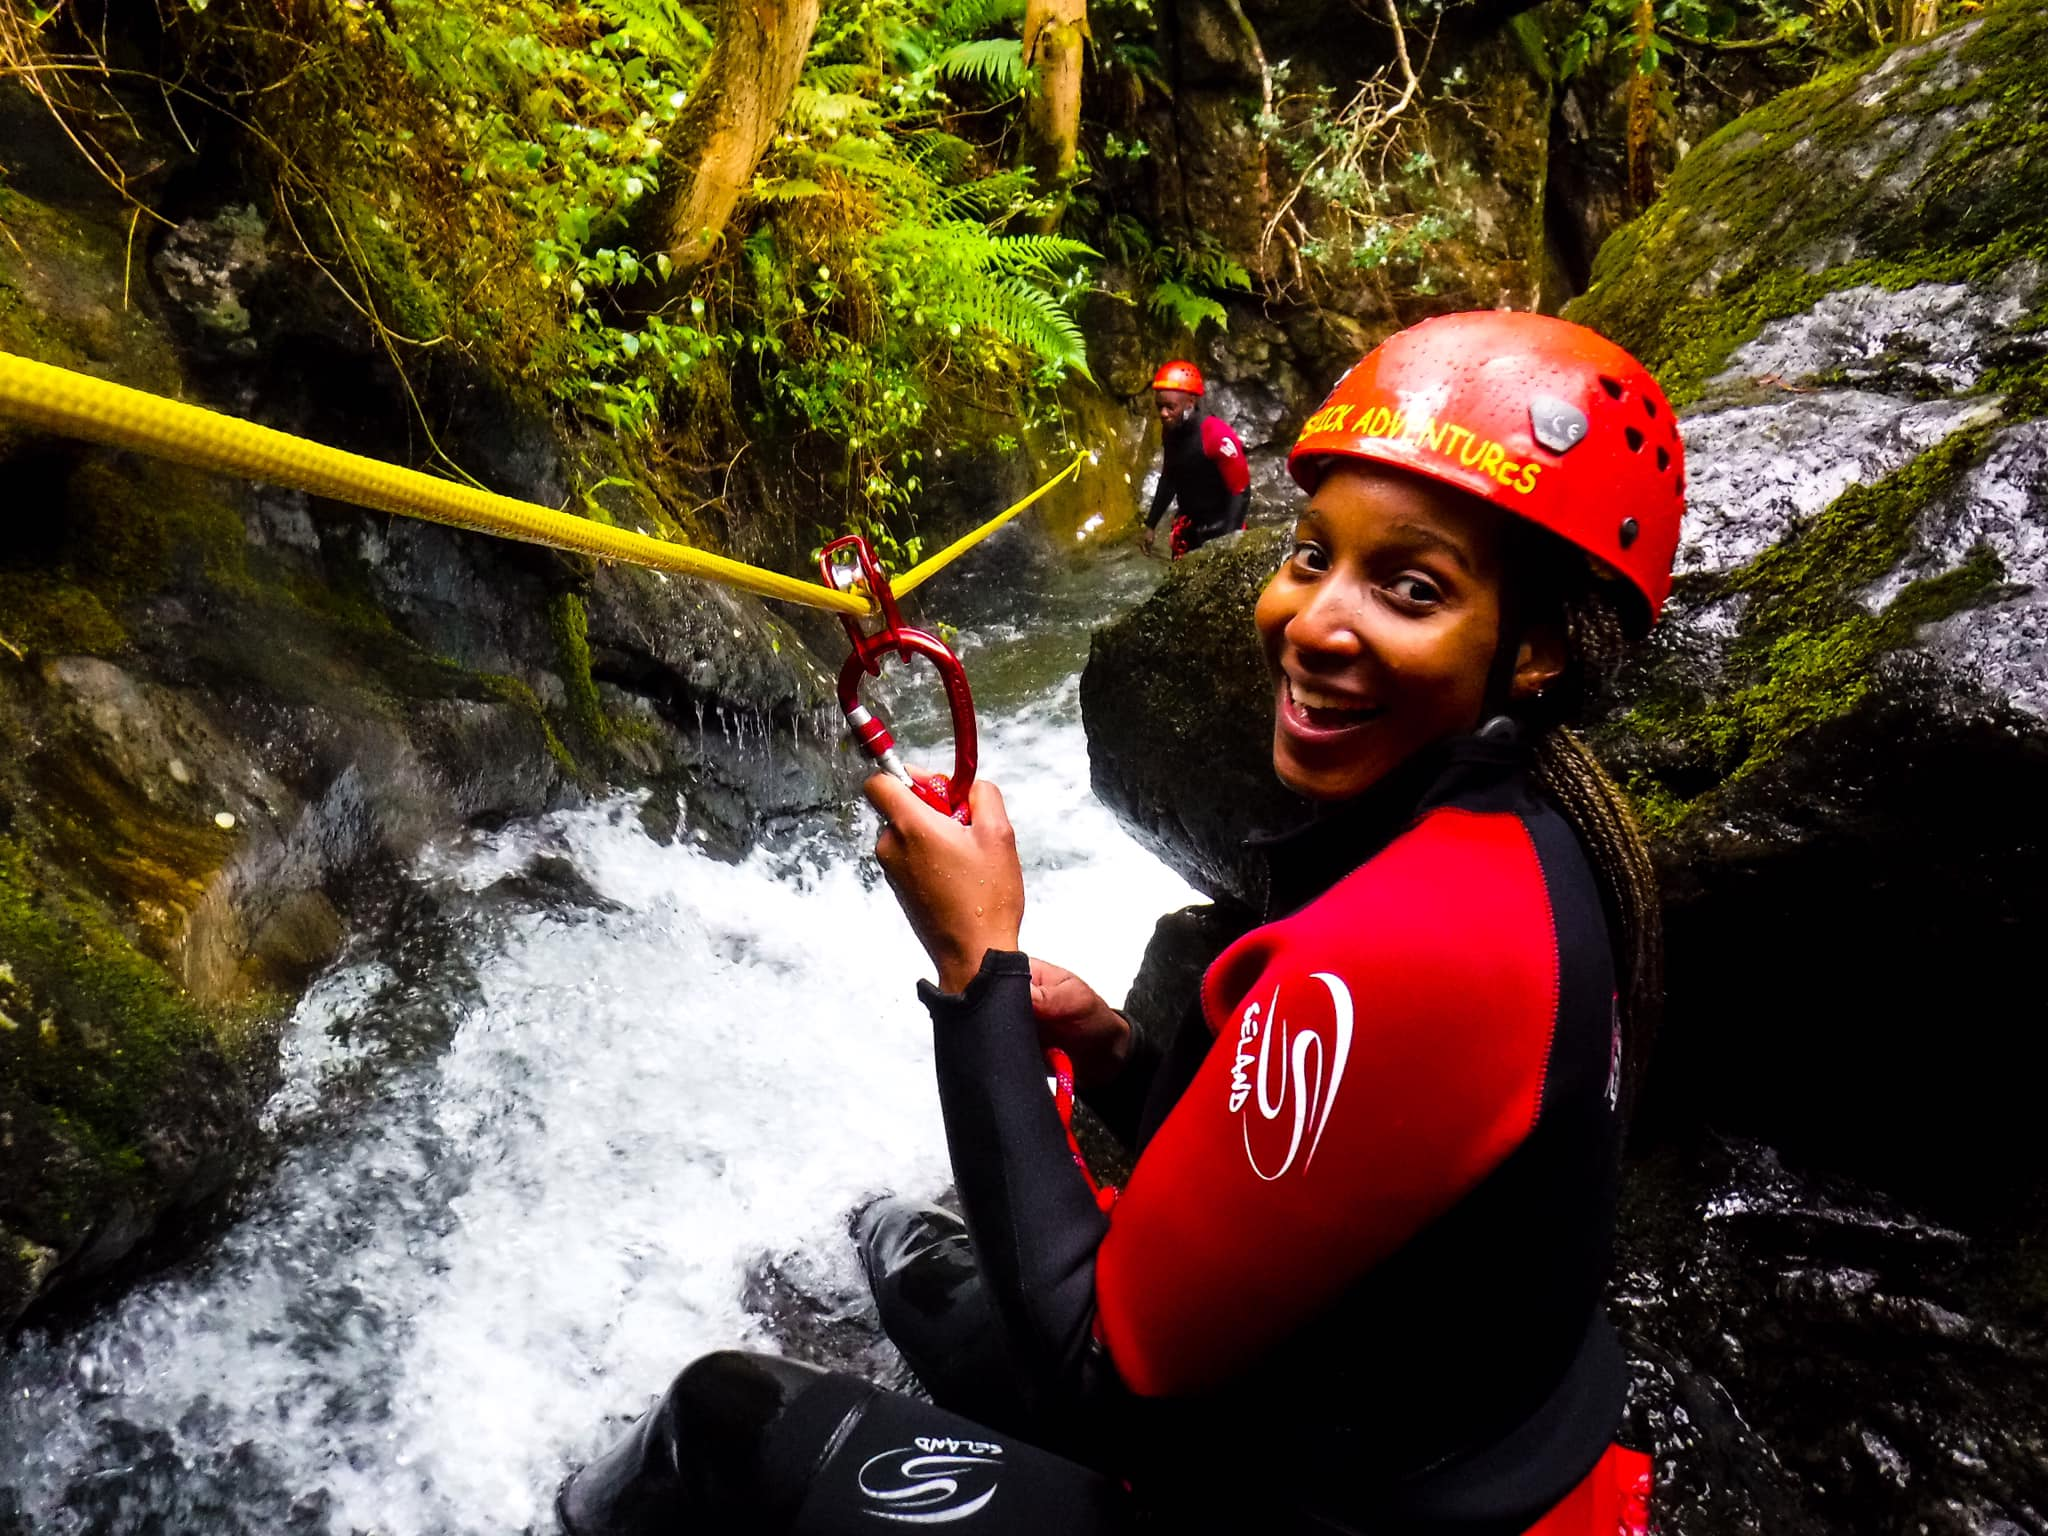 Lake District canyoning in Keswick: Stoney Canyon or Skull Canyon